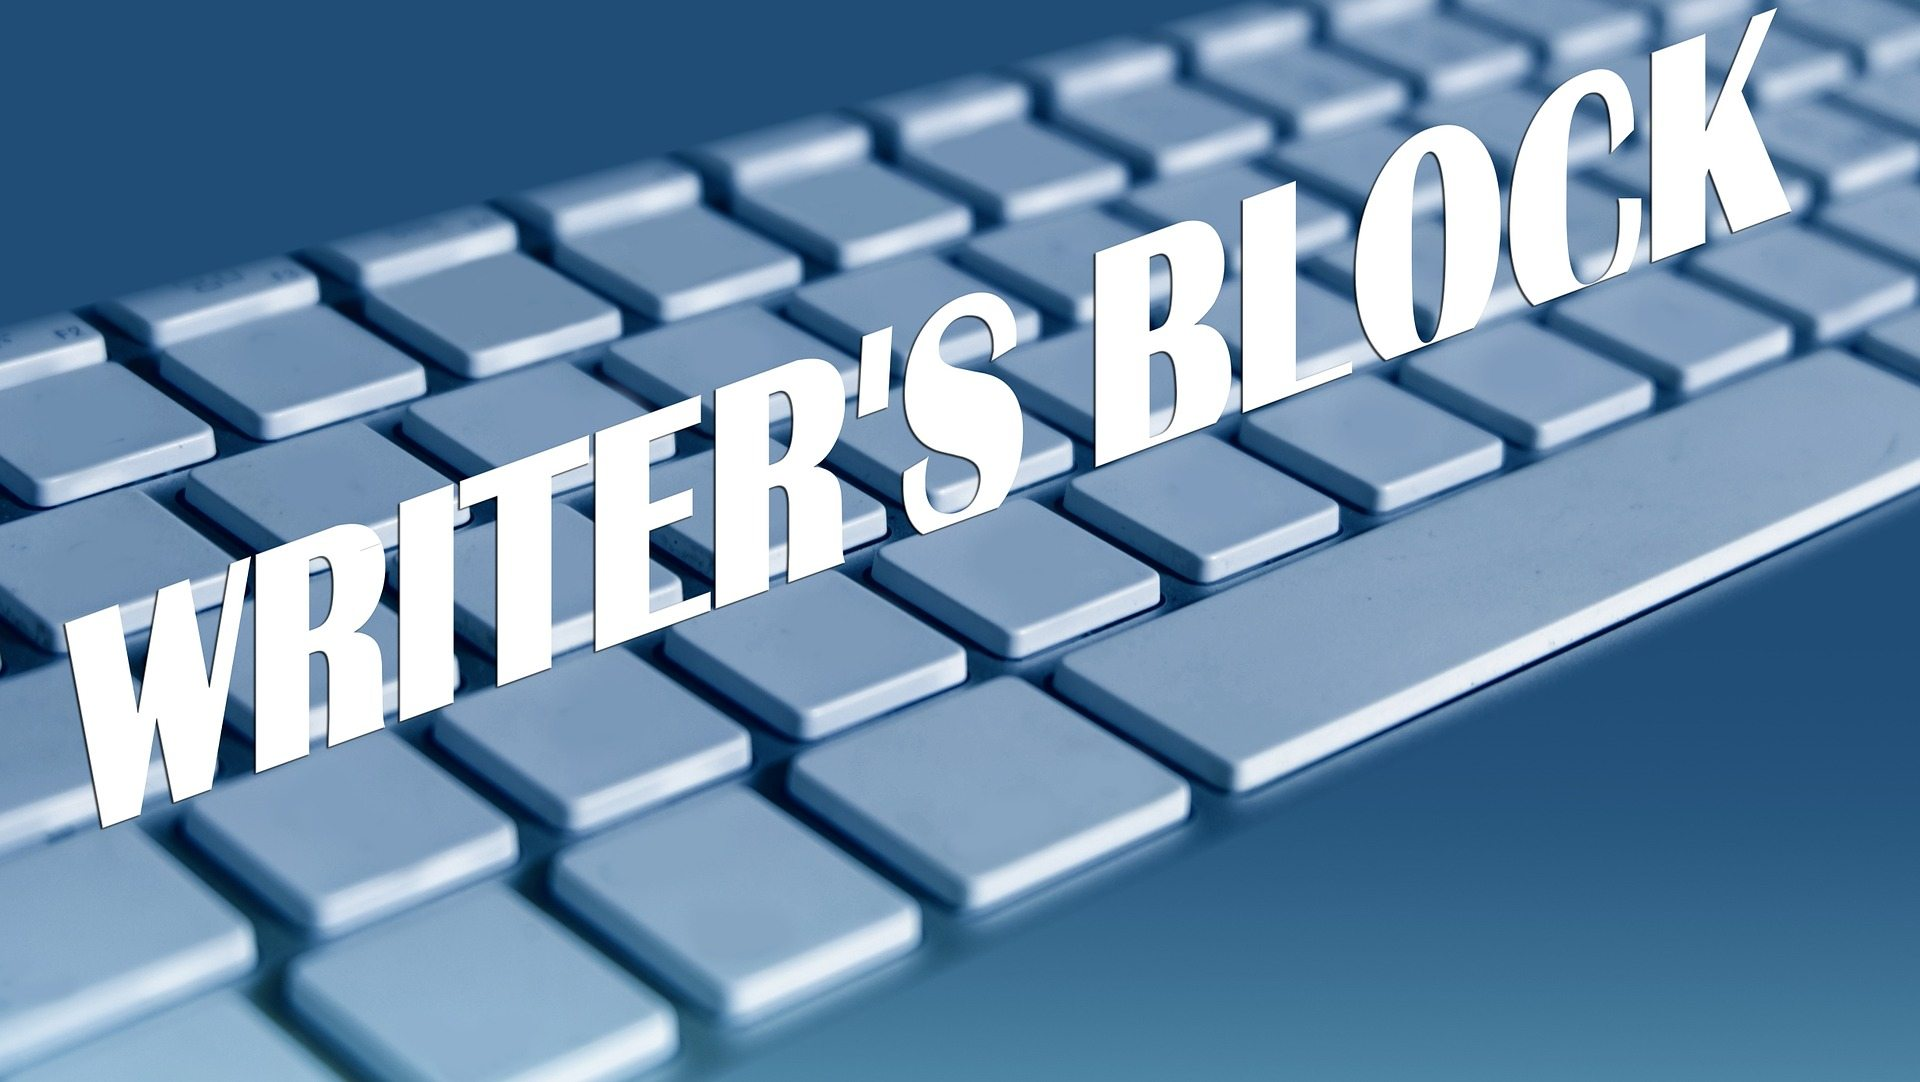 The Marketer's Approach To Overcoming The Content Writer's Block